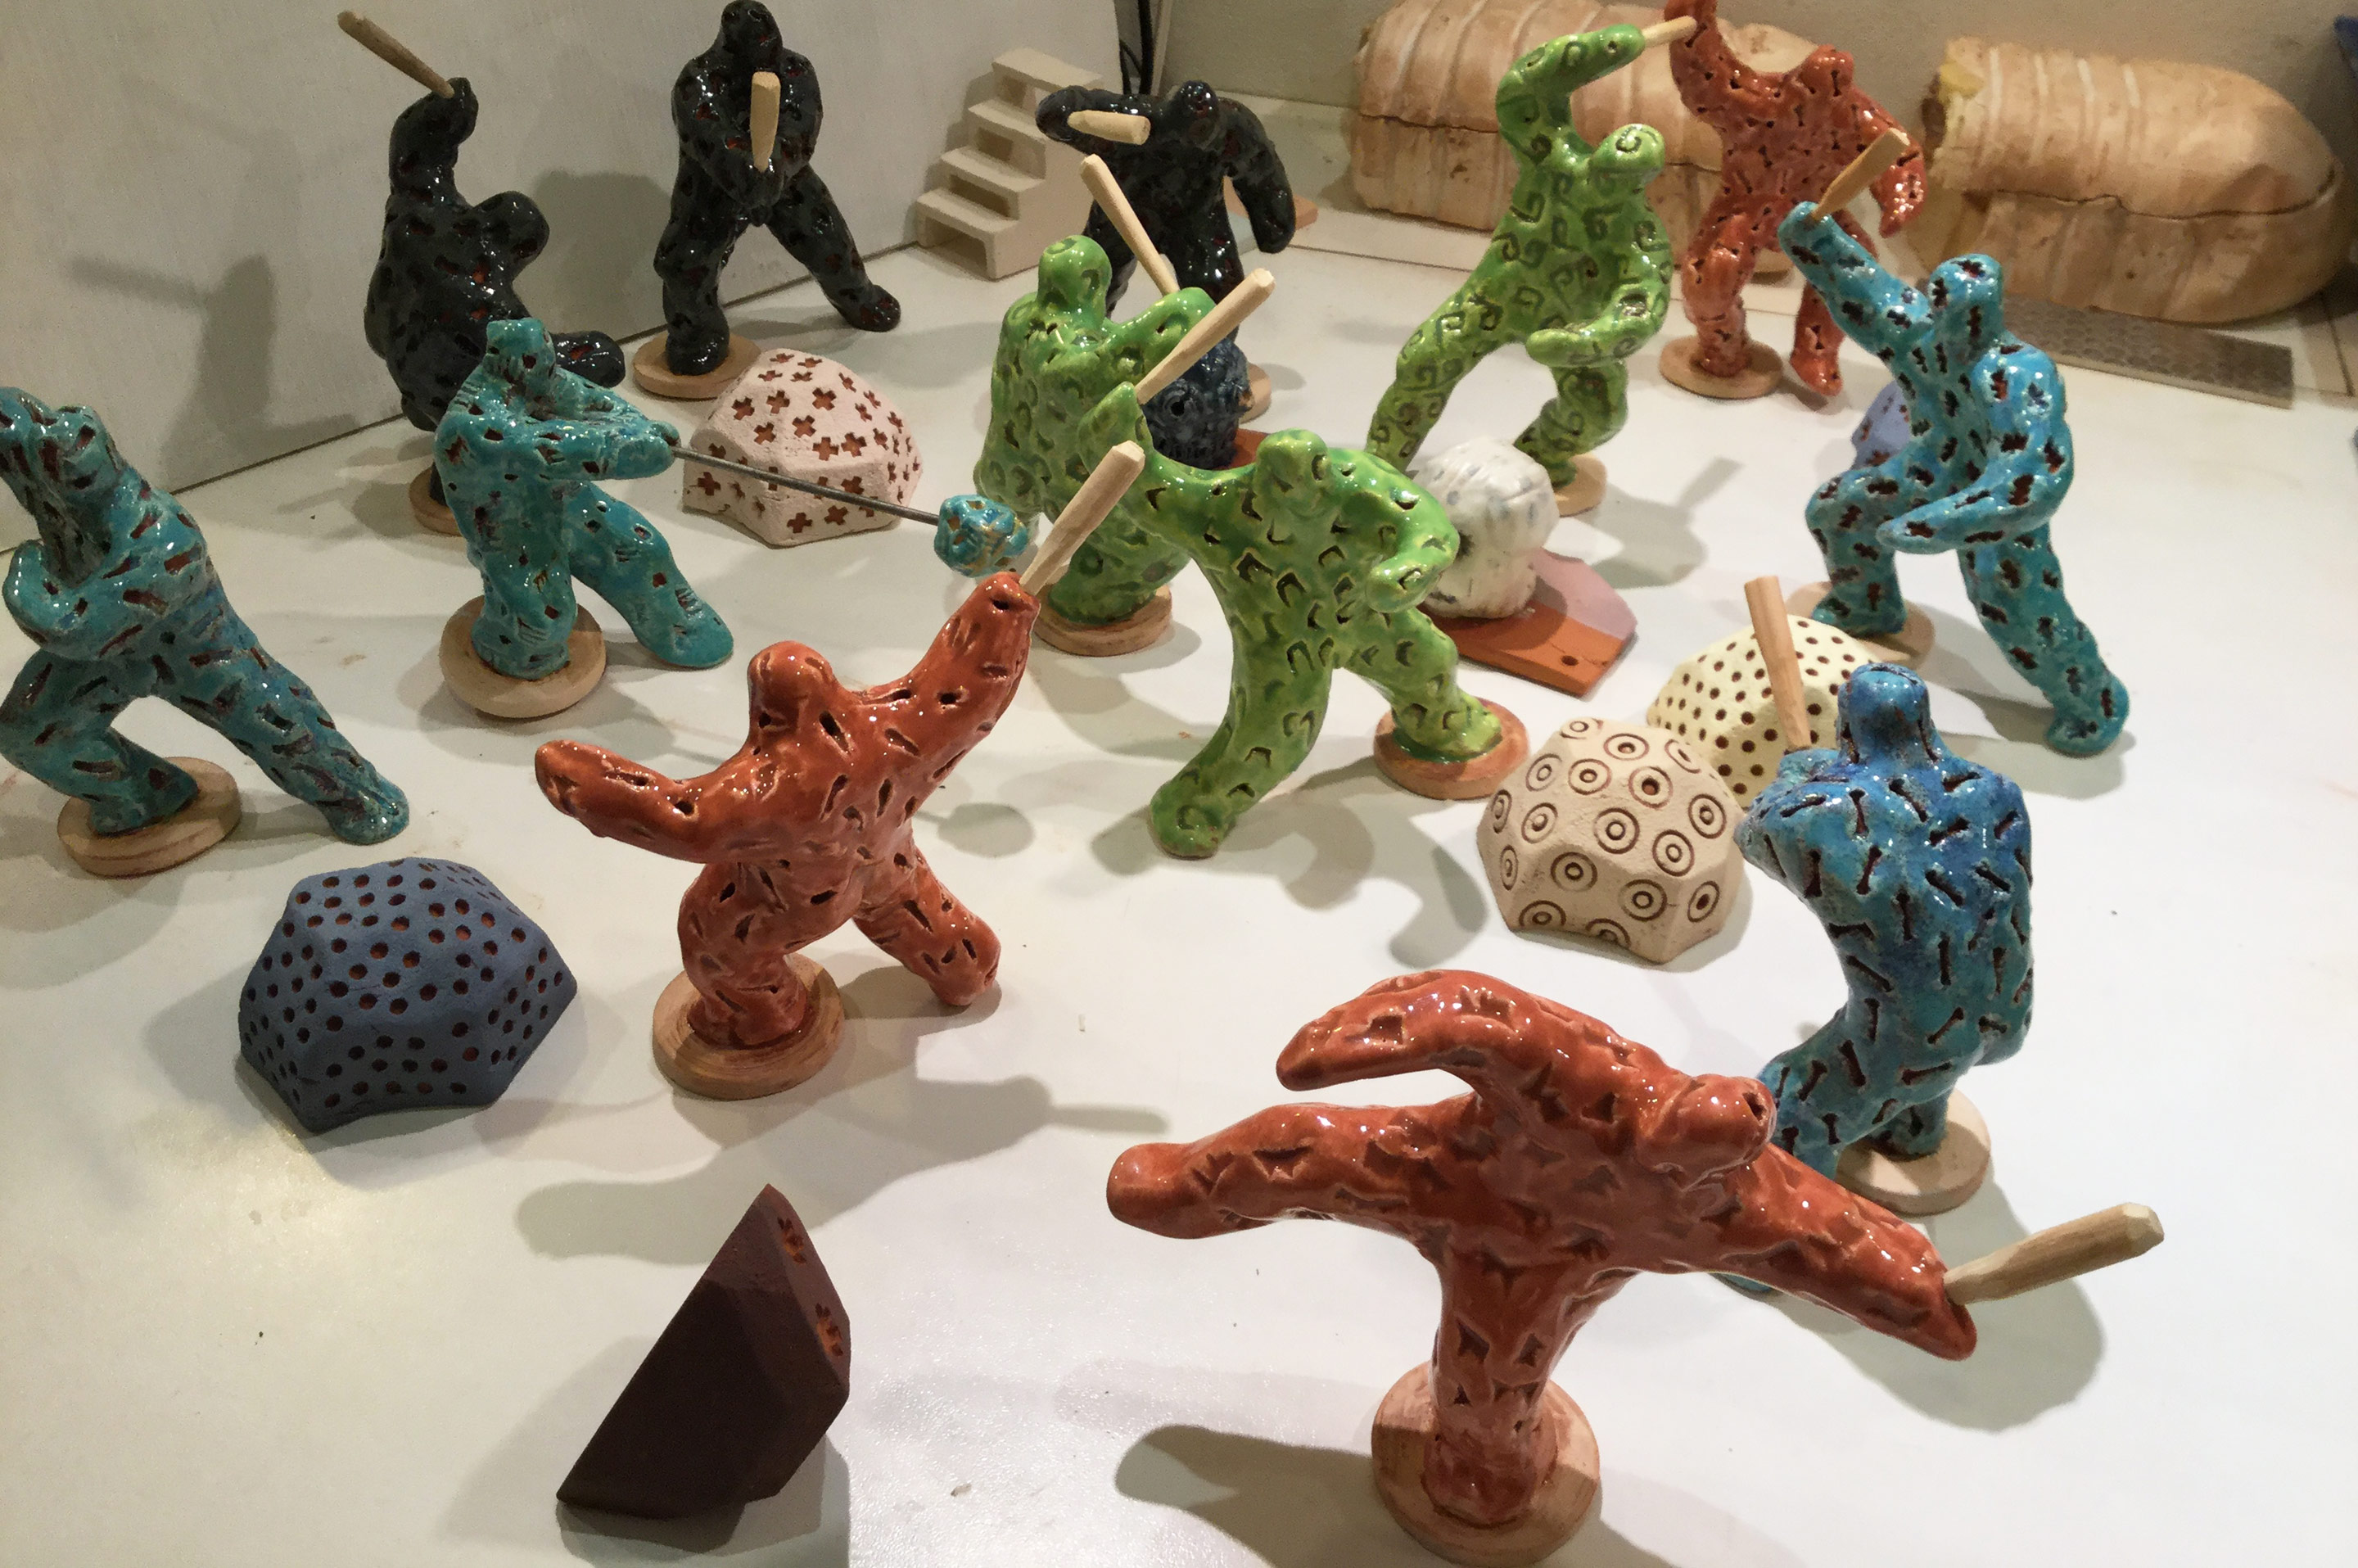 Work in progress on 'Riot of Colour' - twelve small coloured figures with clubs, figures about 10cm tall